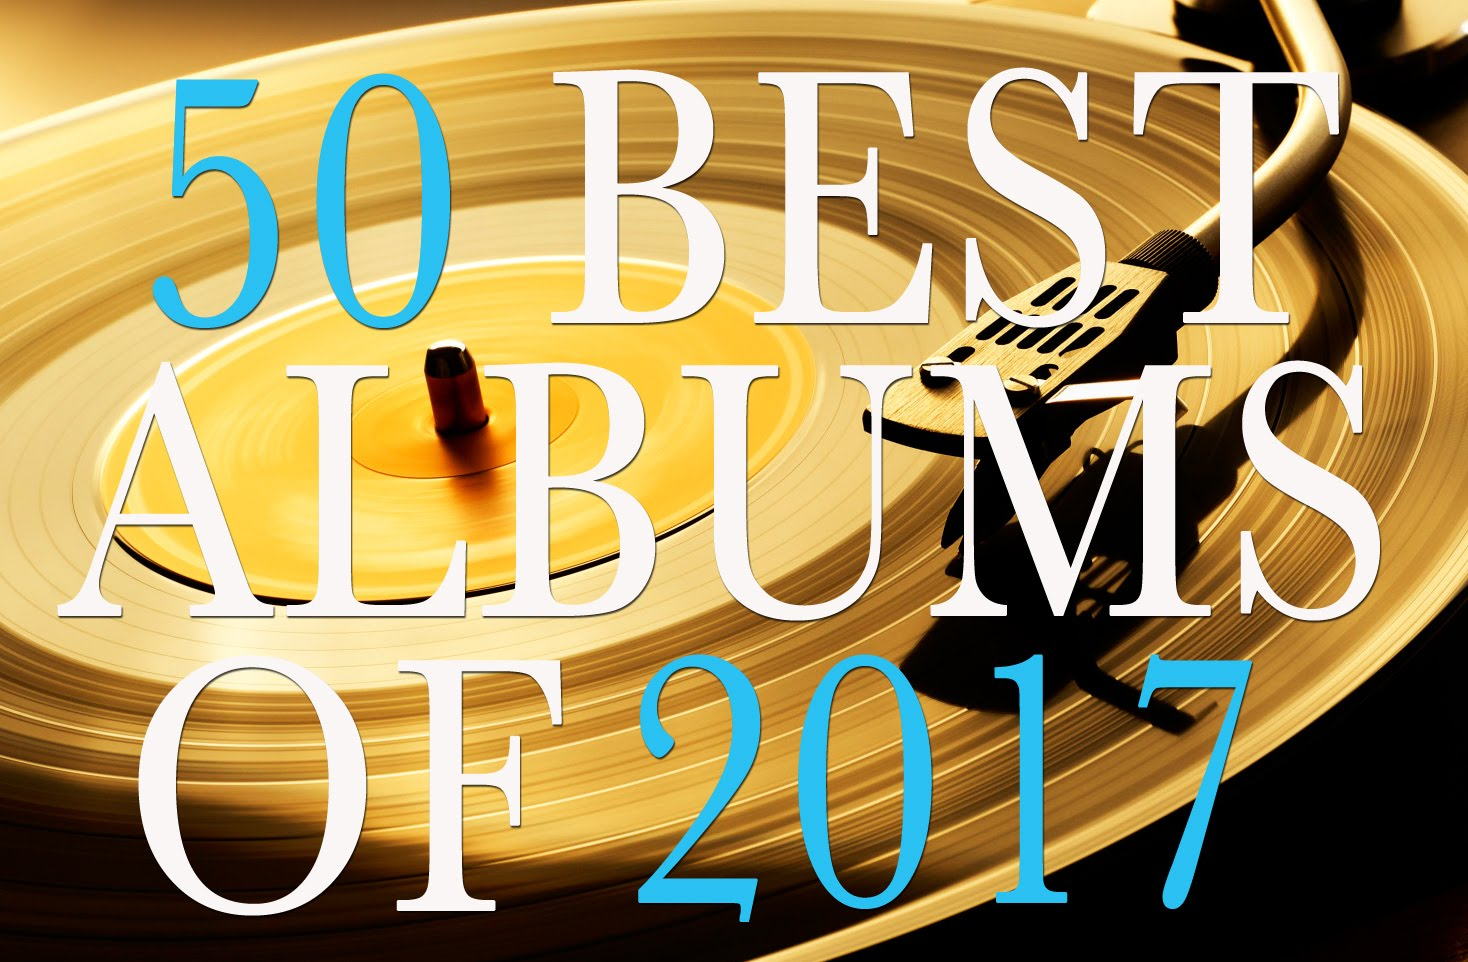 50 Best Albums of 2017